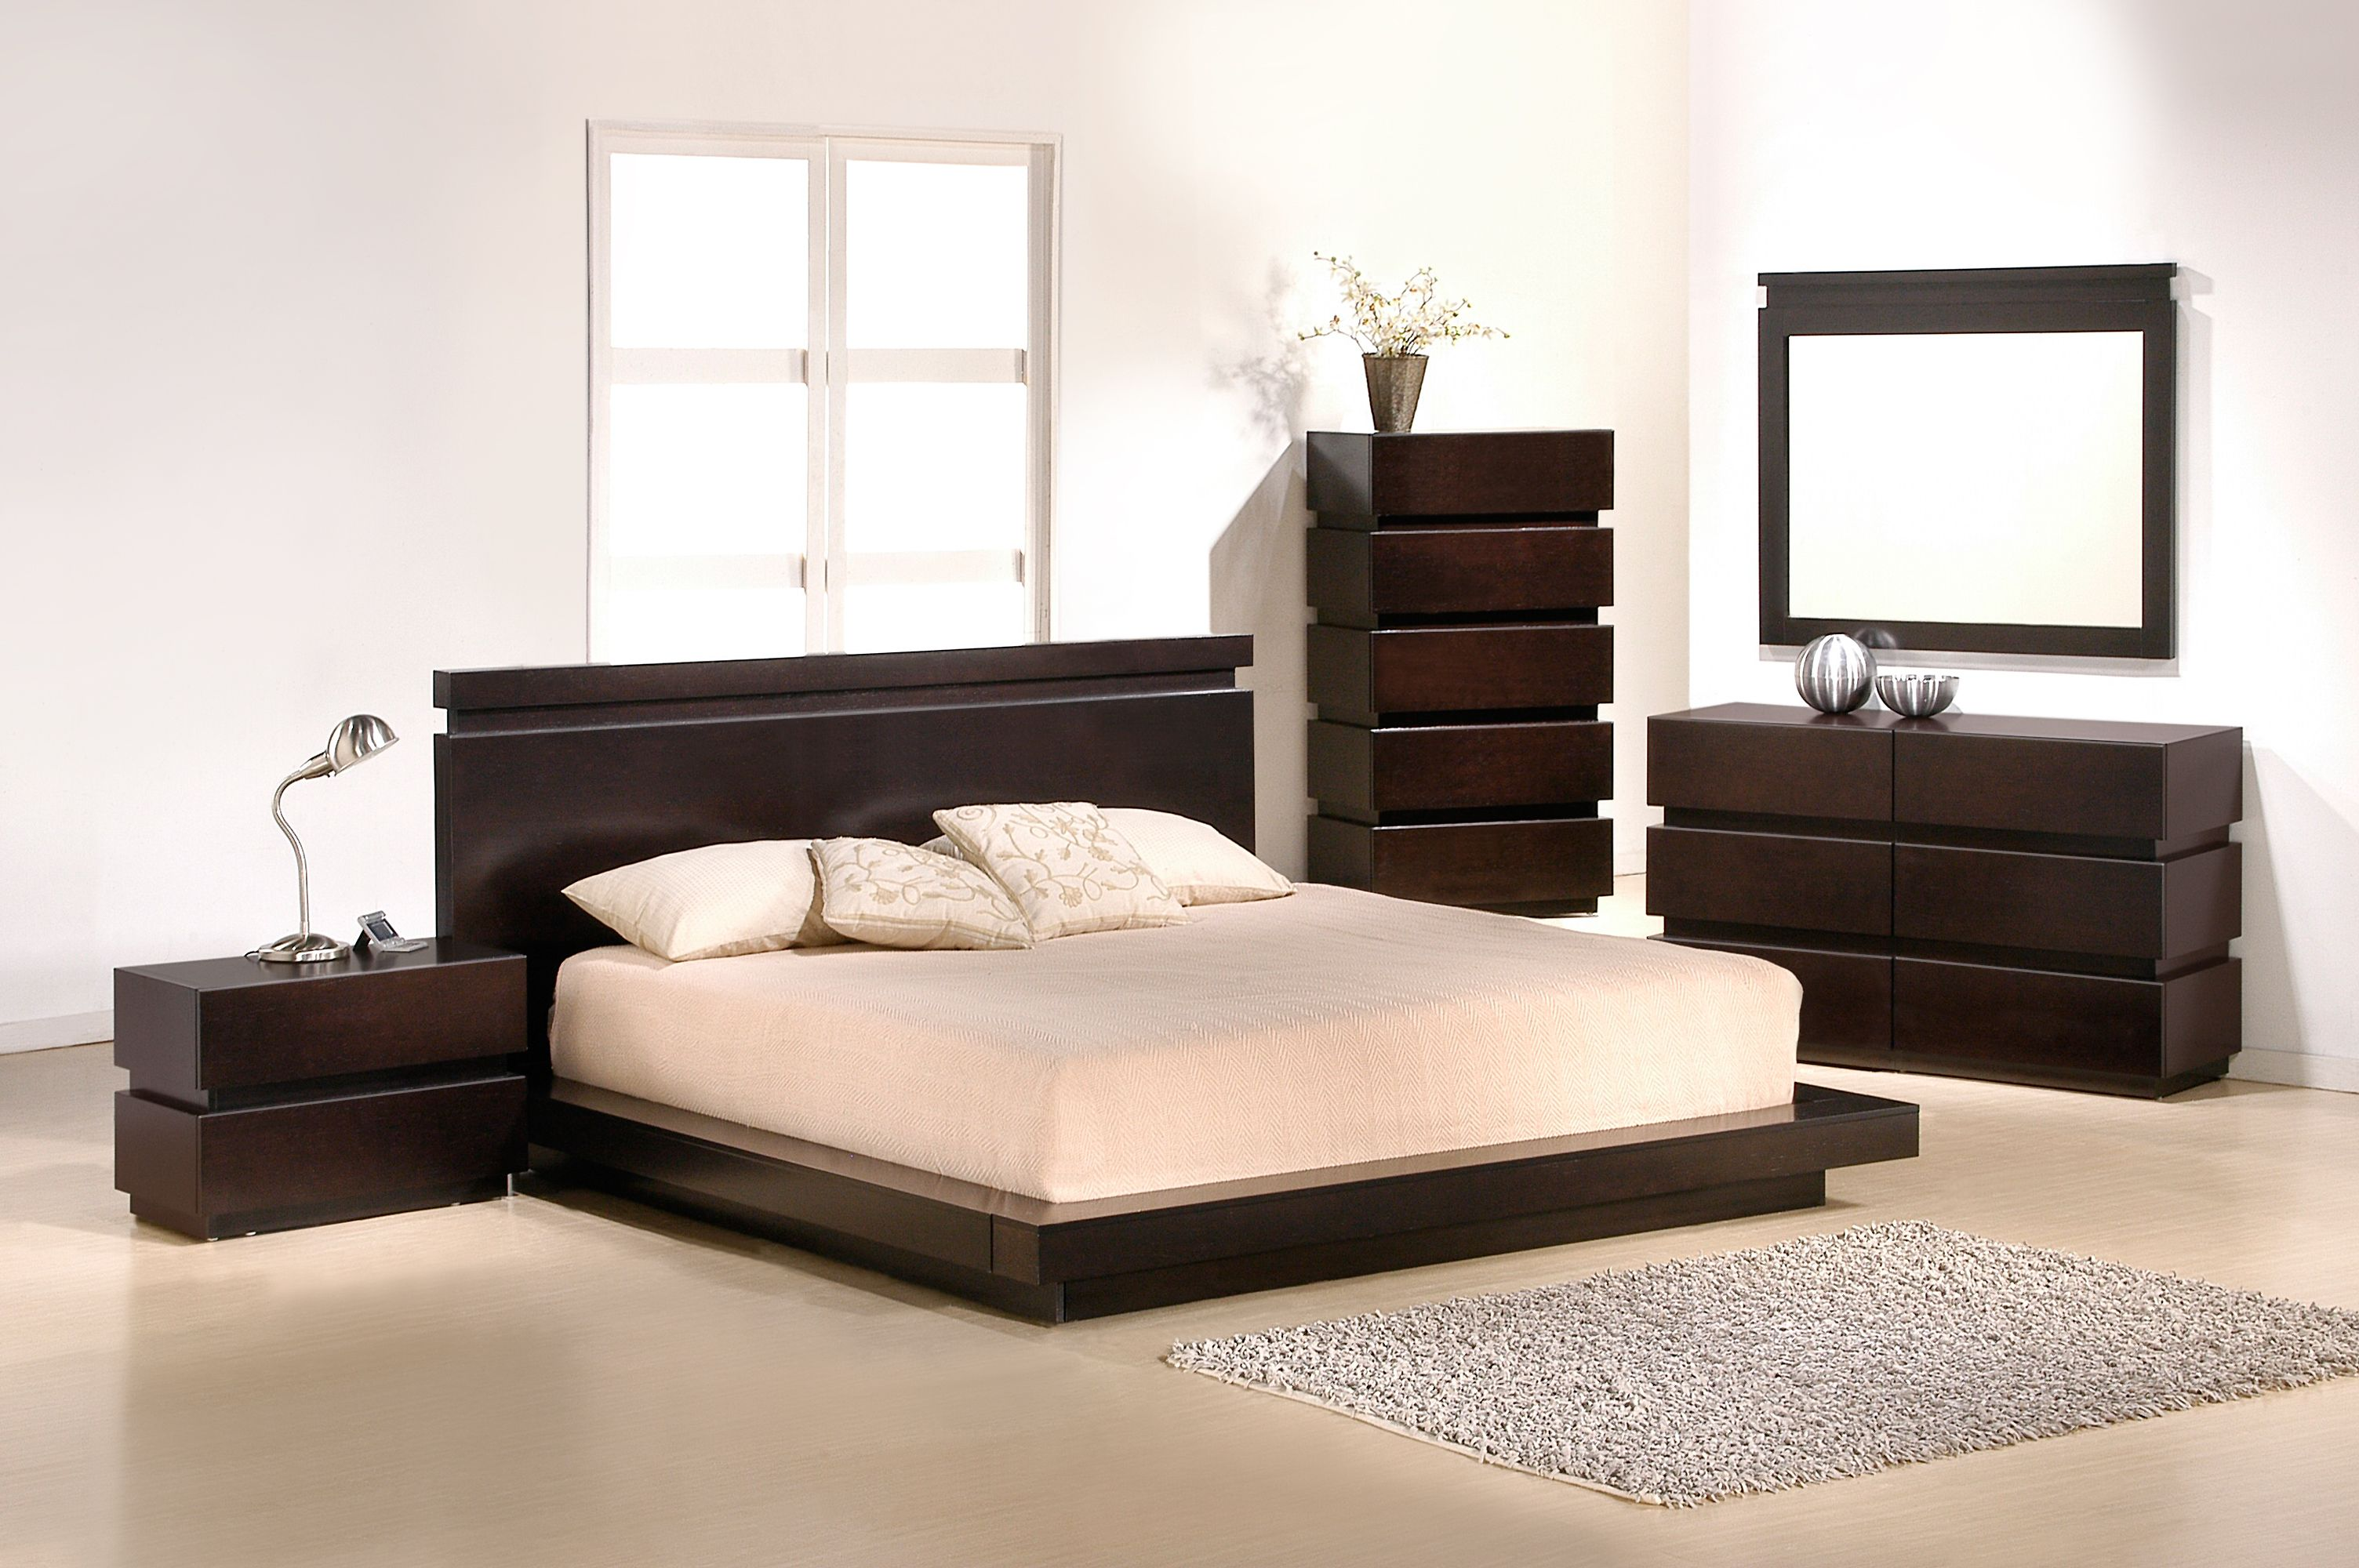 FurniPlanet.com - Buy Knotch (Queen Size Bed) at Discount Price at ...